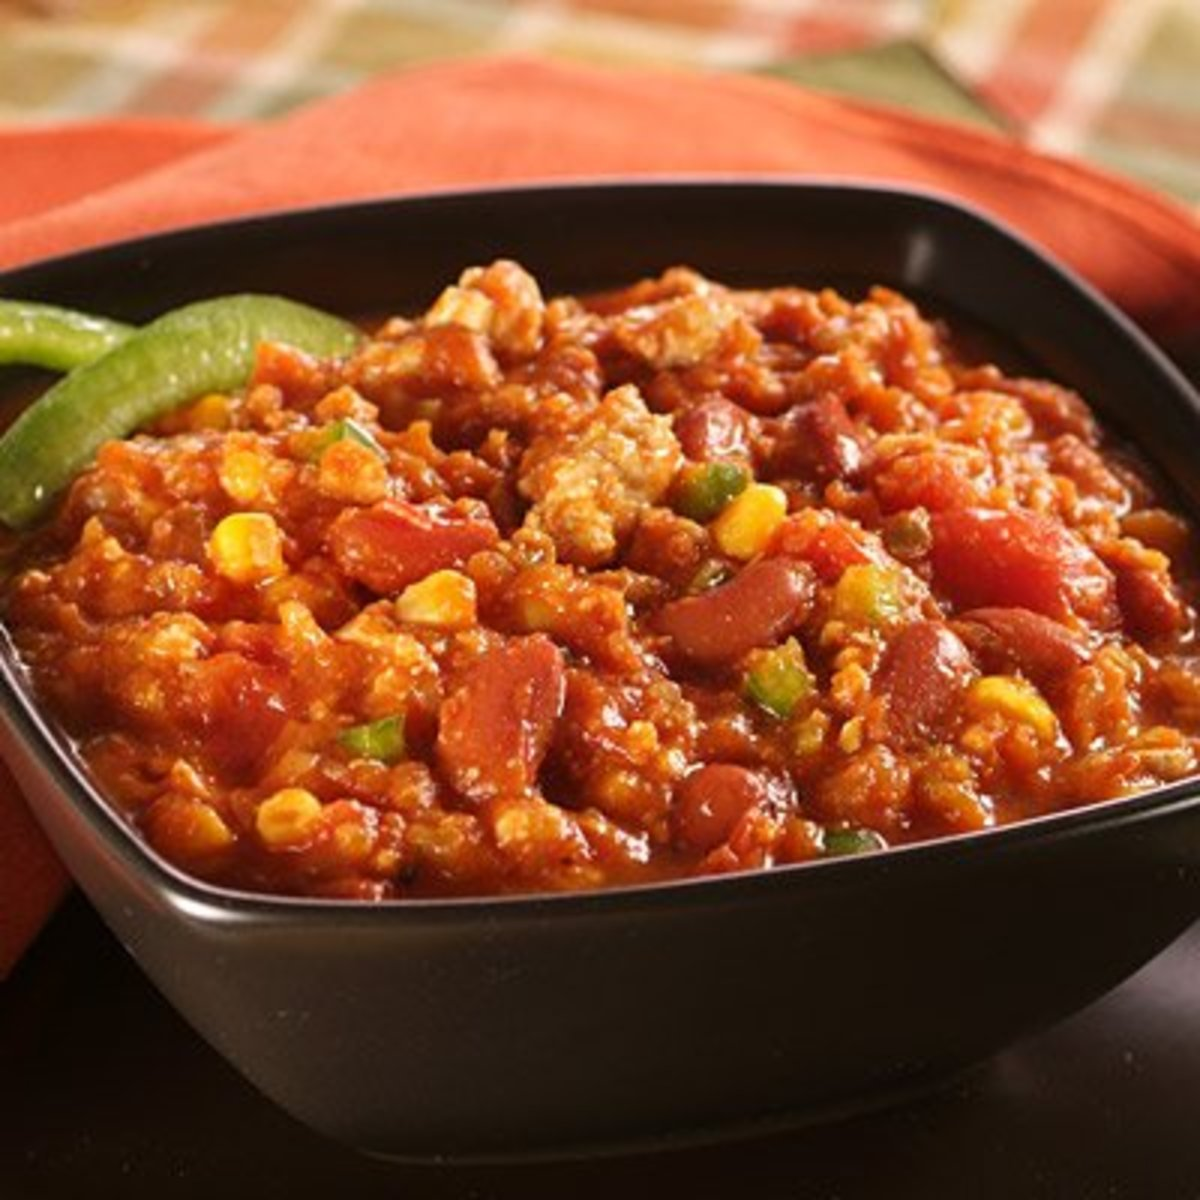 Seafood chili picture